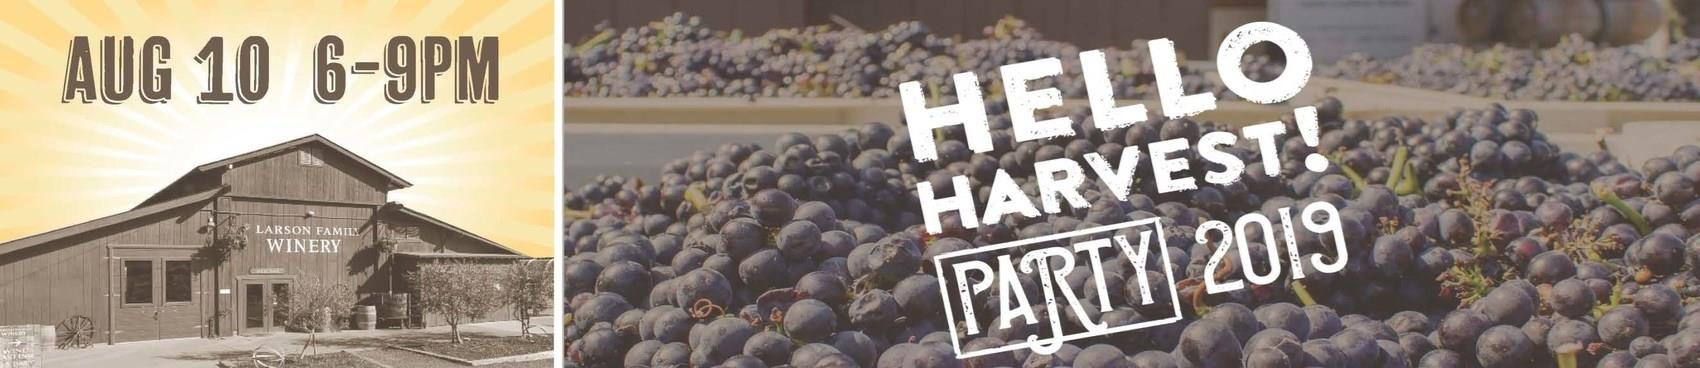 Purchase Tickets to Hello Harvest! Party at Larson Family Winery on CellarPass